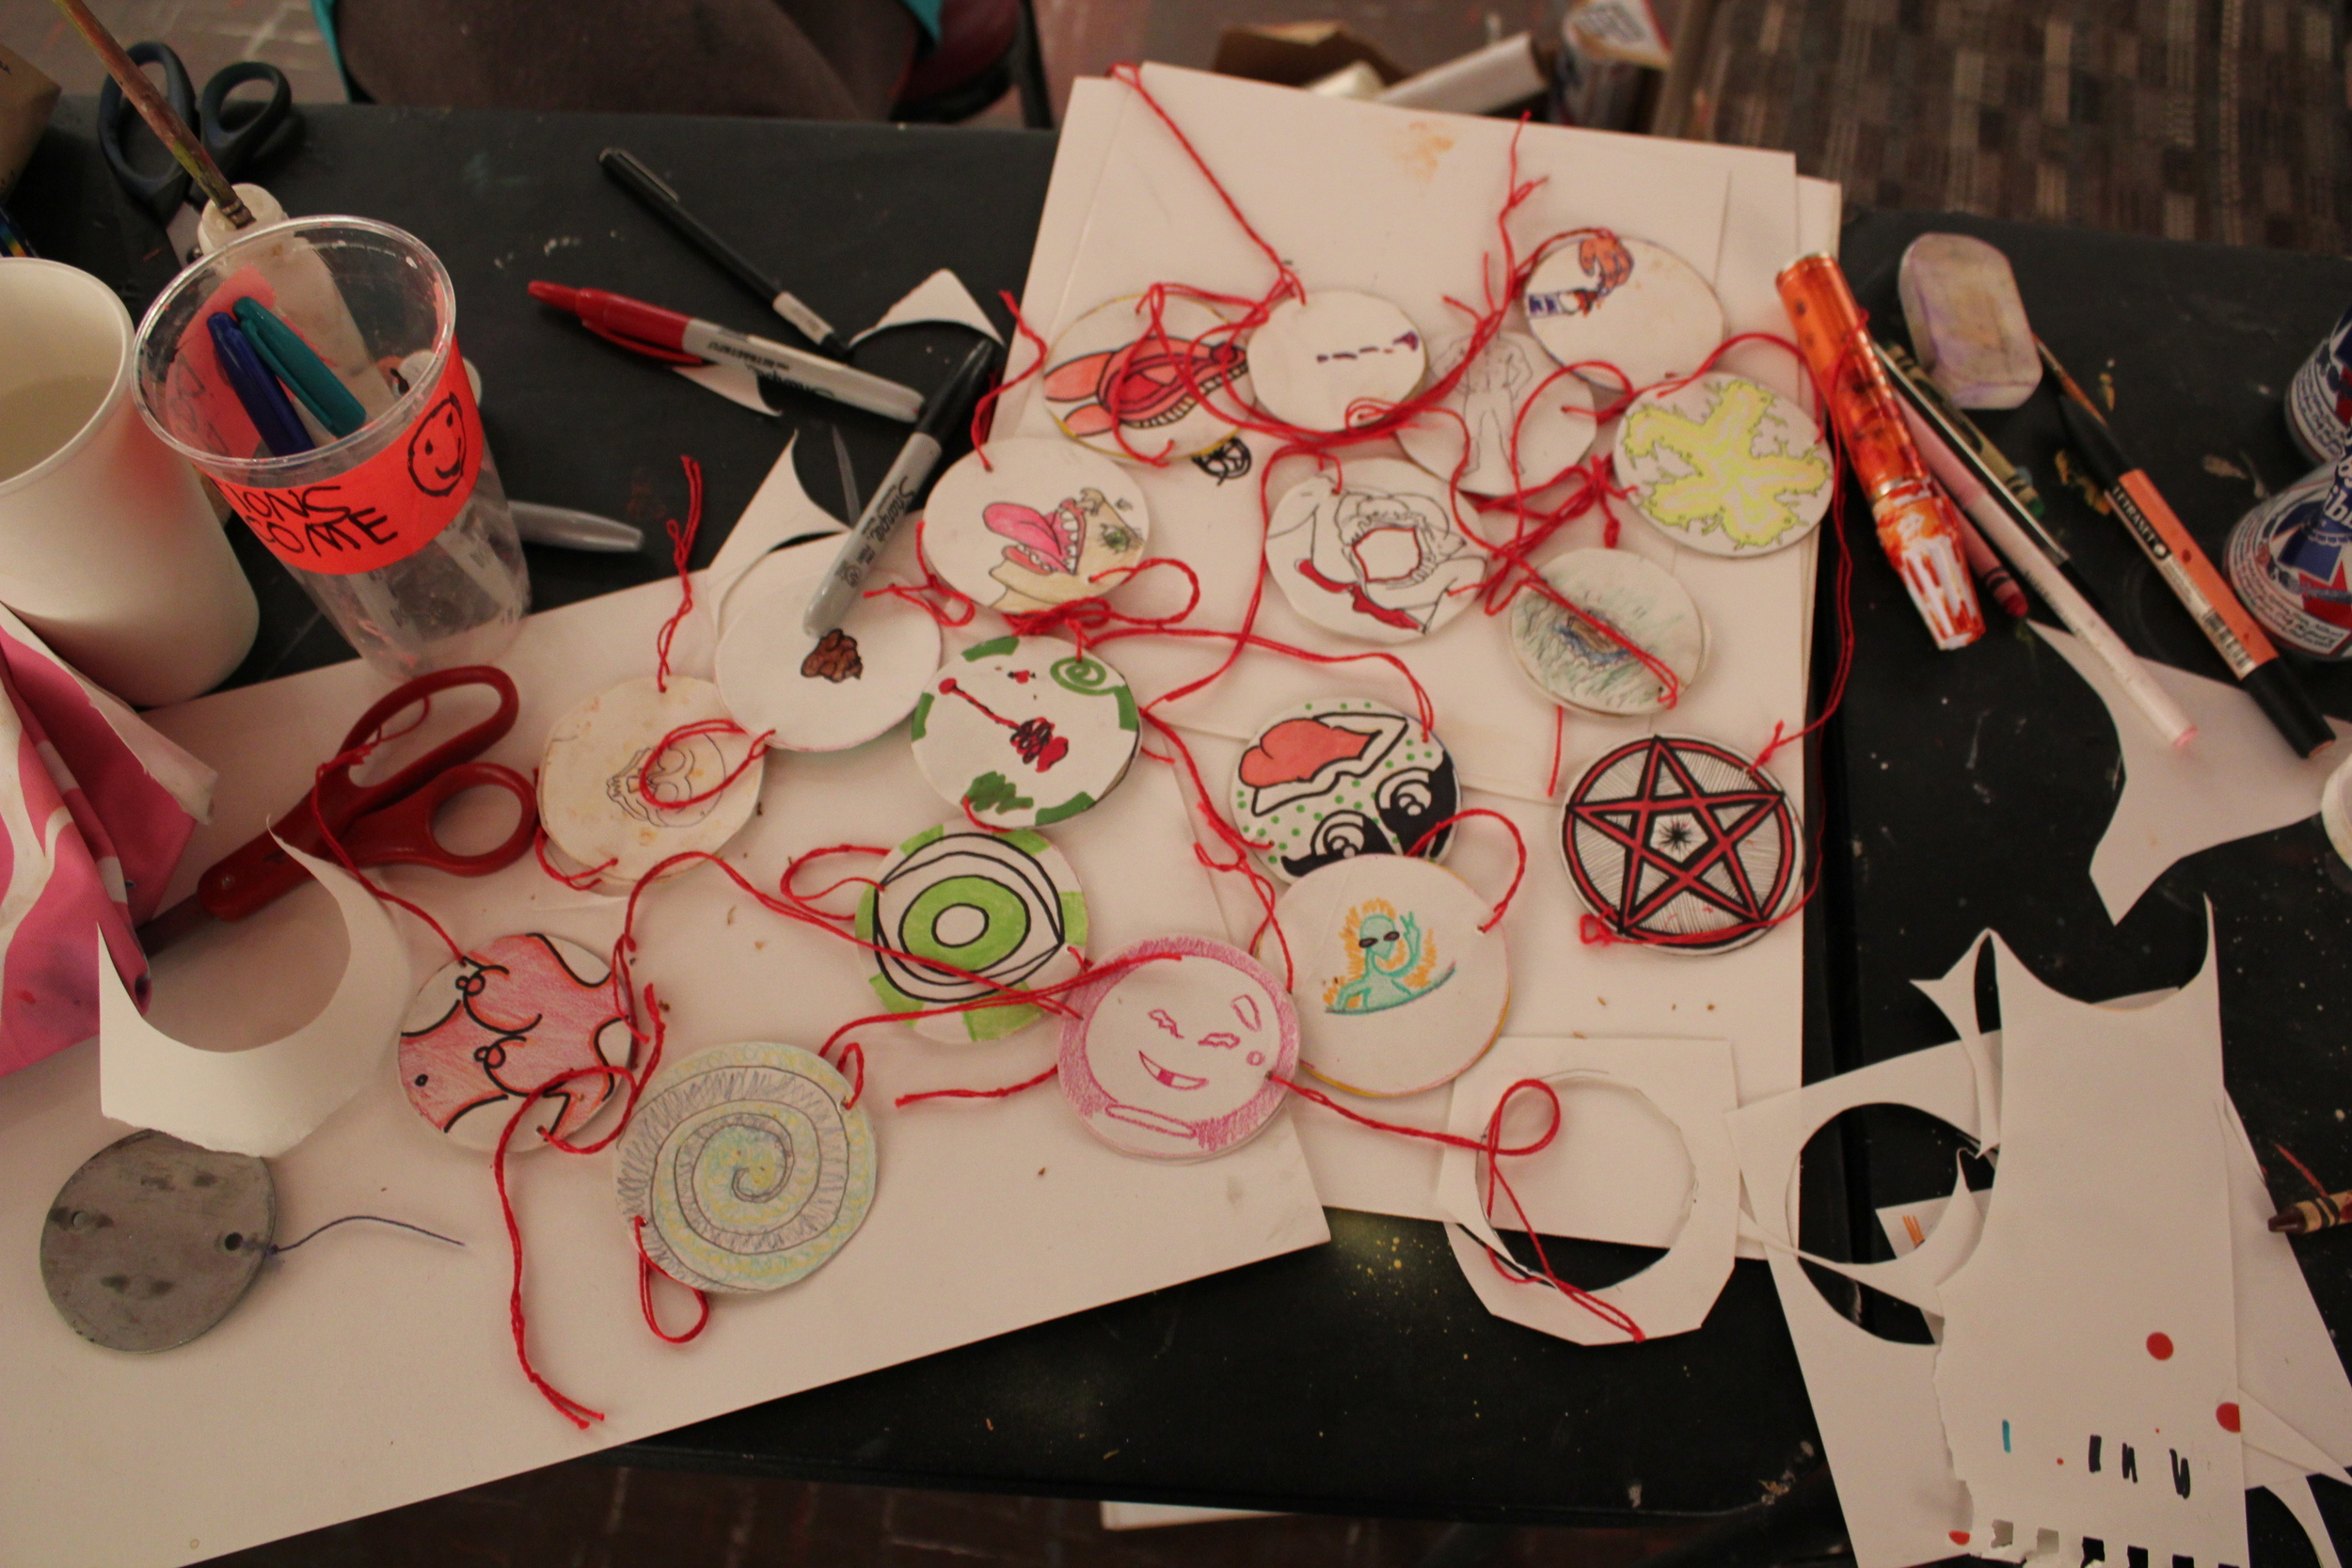 Aftermath of the thaumatrope workshop at the Peanut Gallery in October 2013.